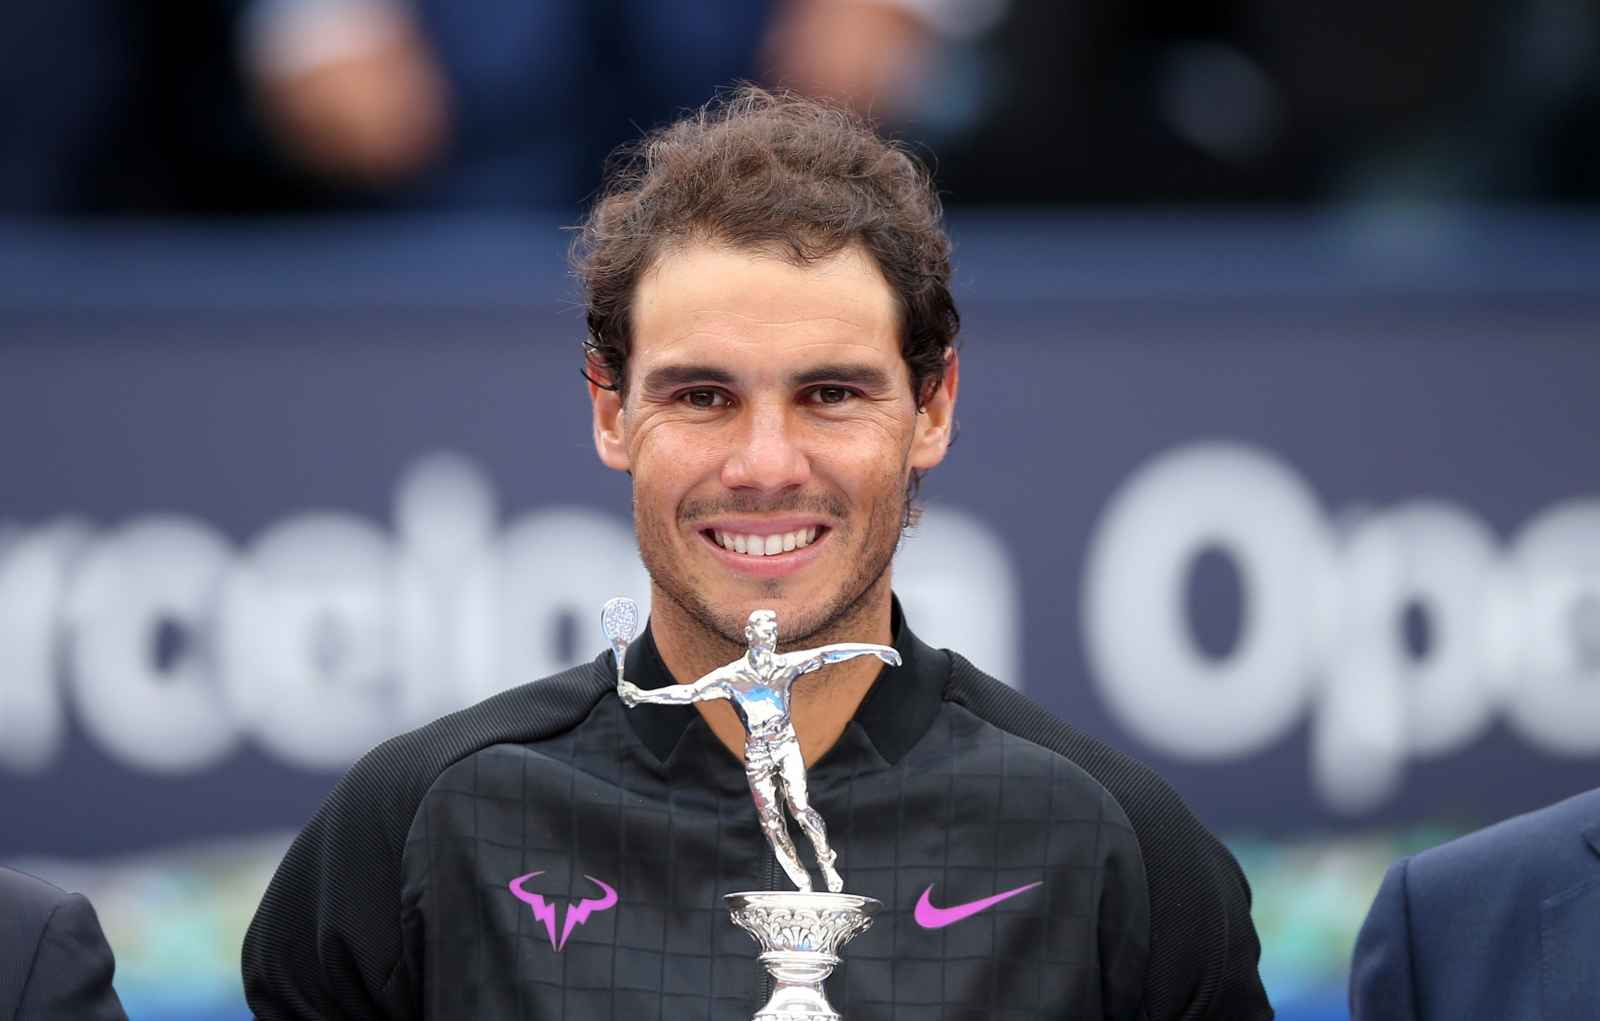 I have been preparing my future for years says Rafael Nadal